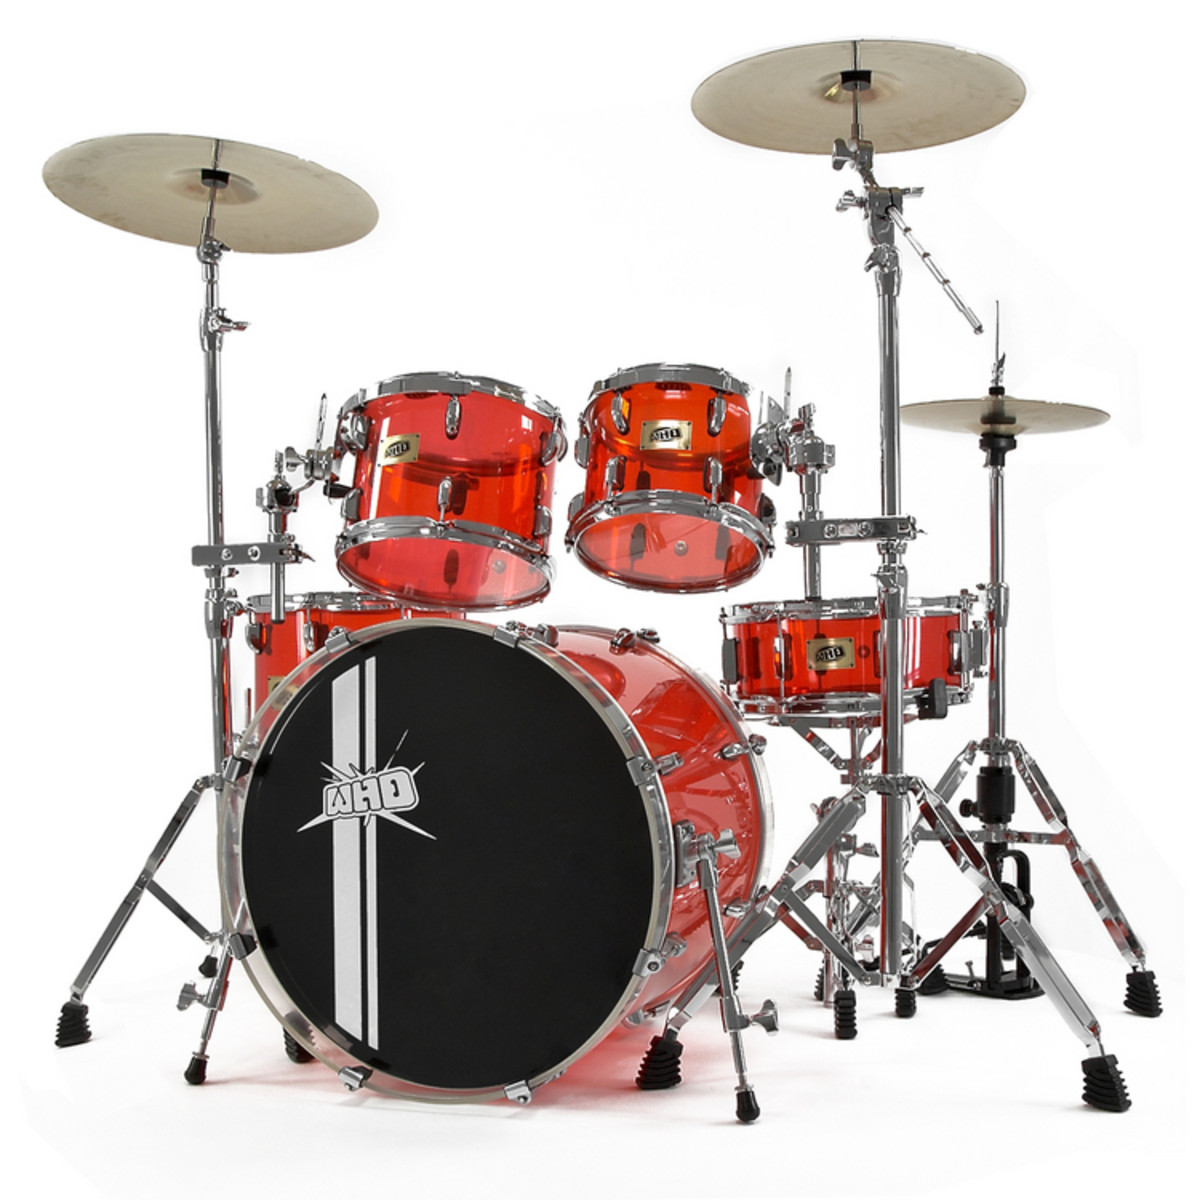 disc whd acrylic drum kit clear crimson zildjian zhtp4p pack at. Black Bedroom Furniture Sets. Home Design Ideas